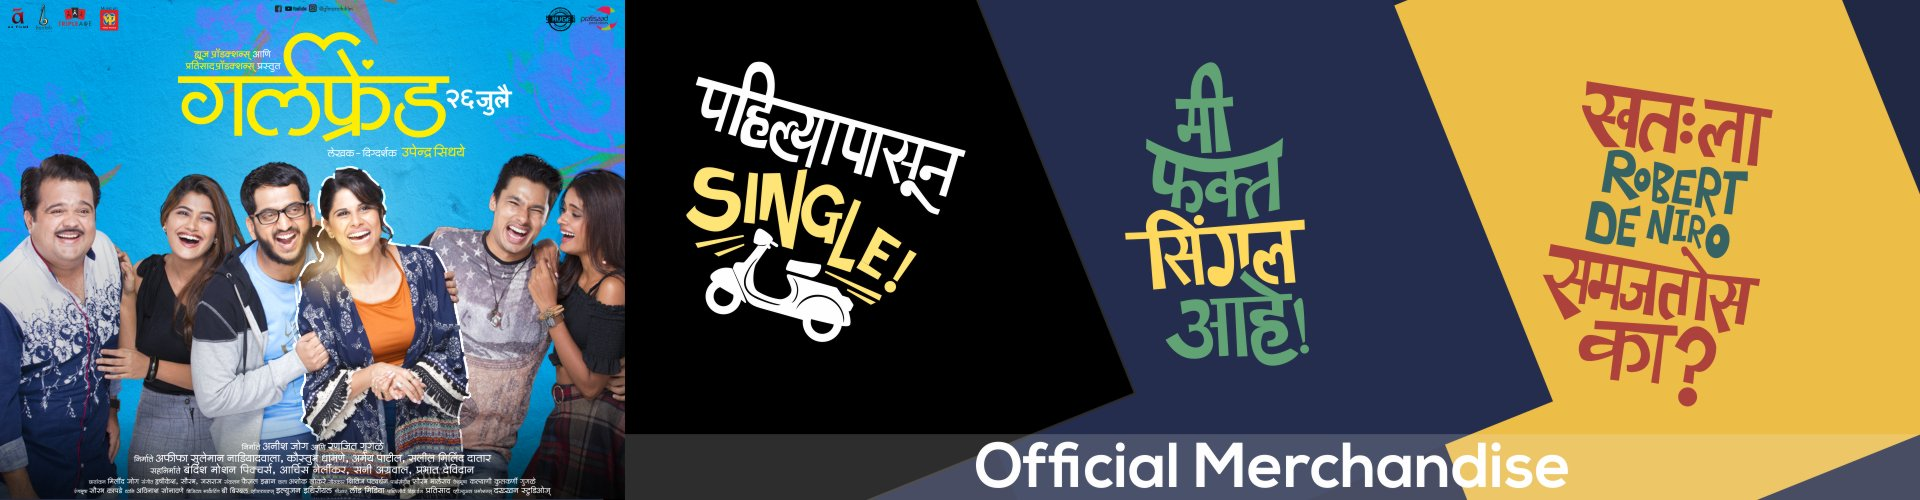 Girlfriend Marathi Film Official T-shirt by Adimanav.com